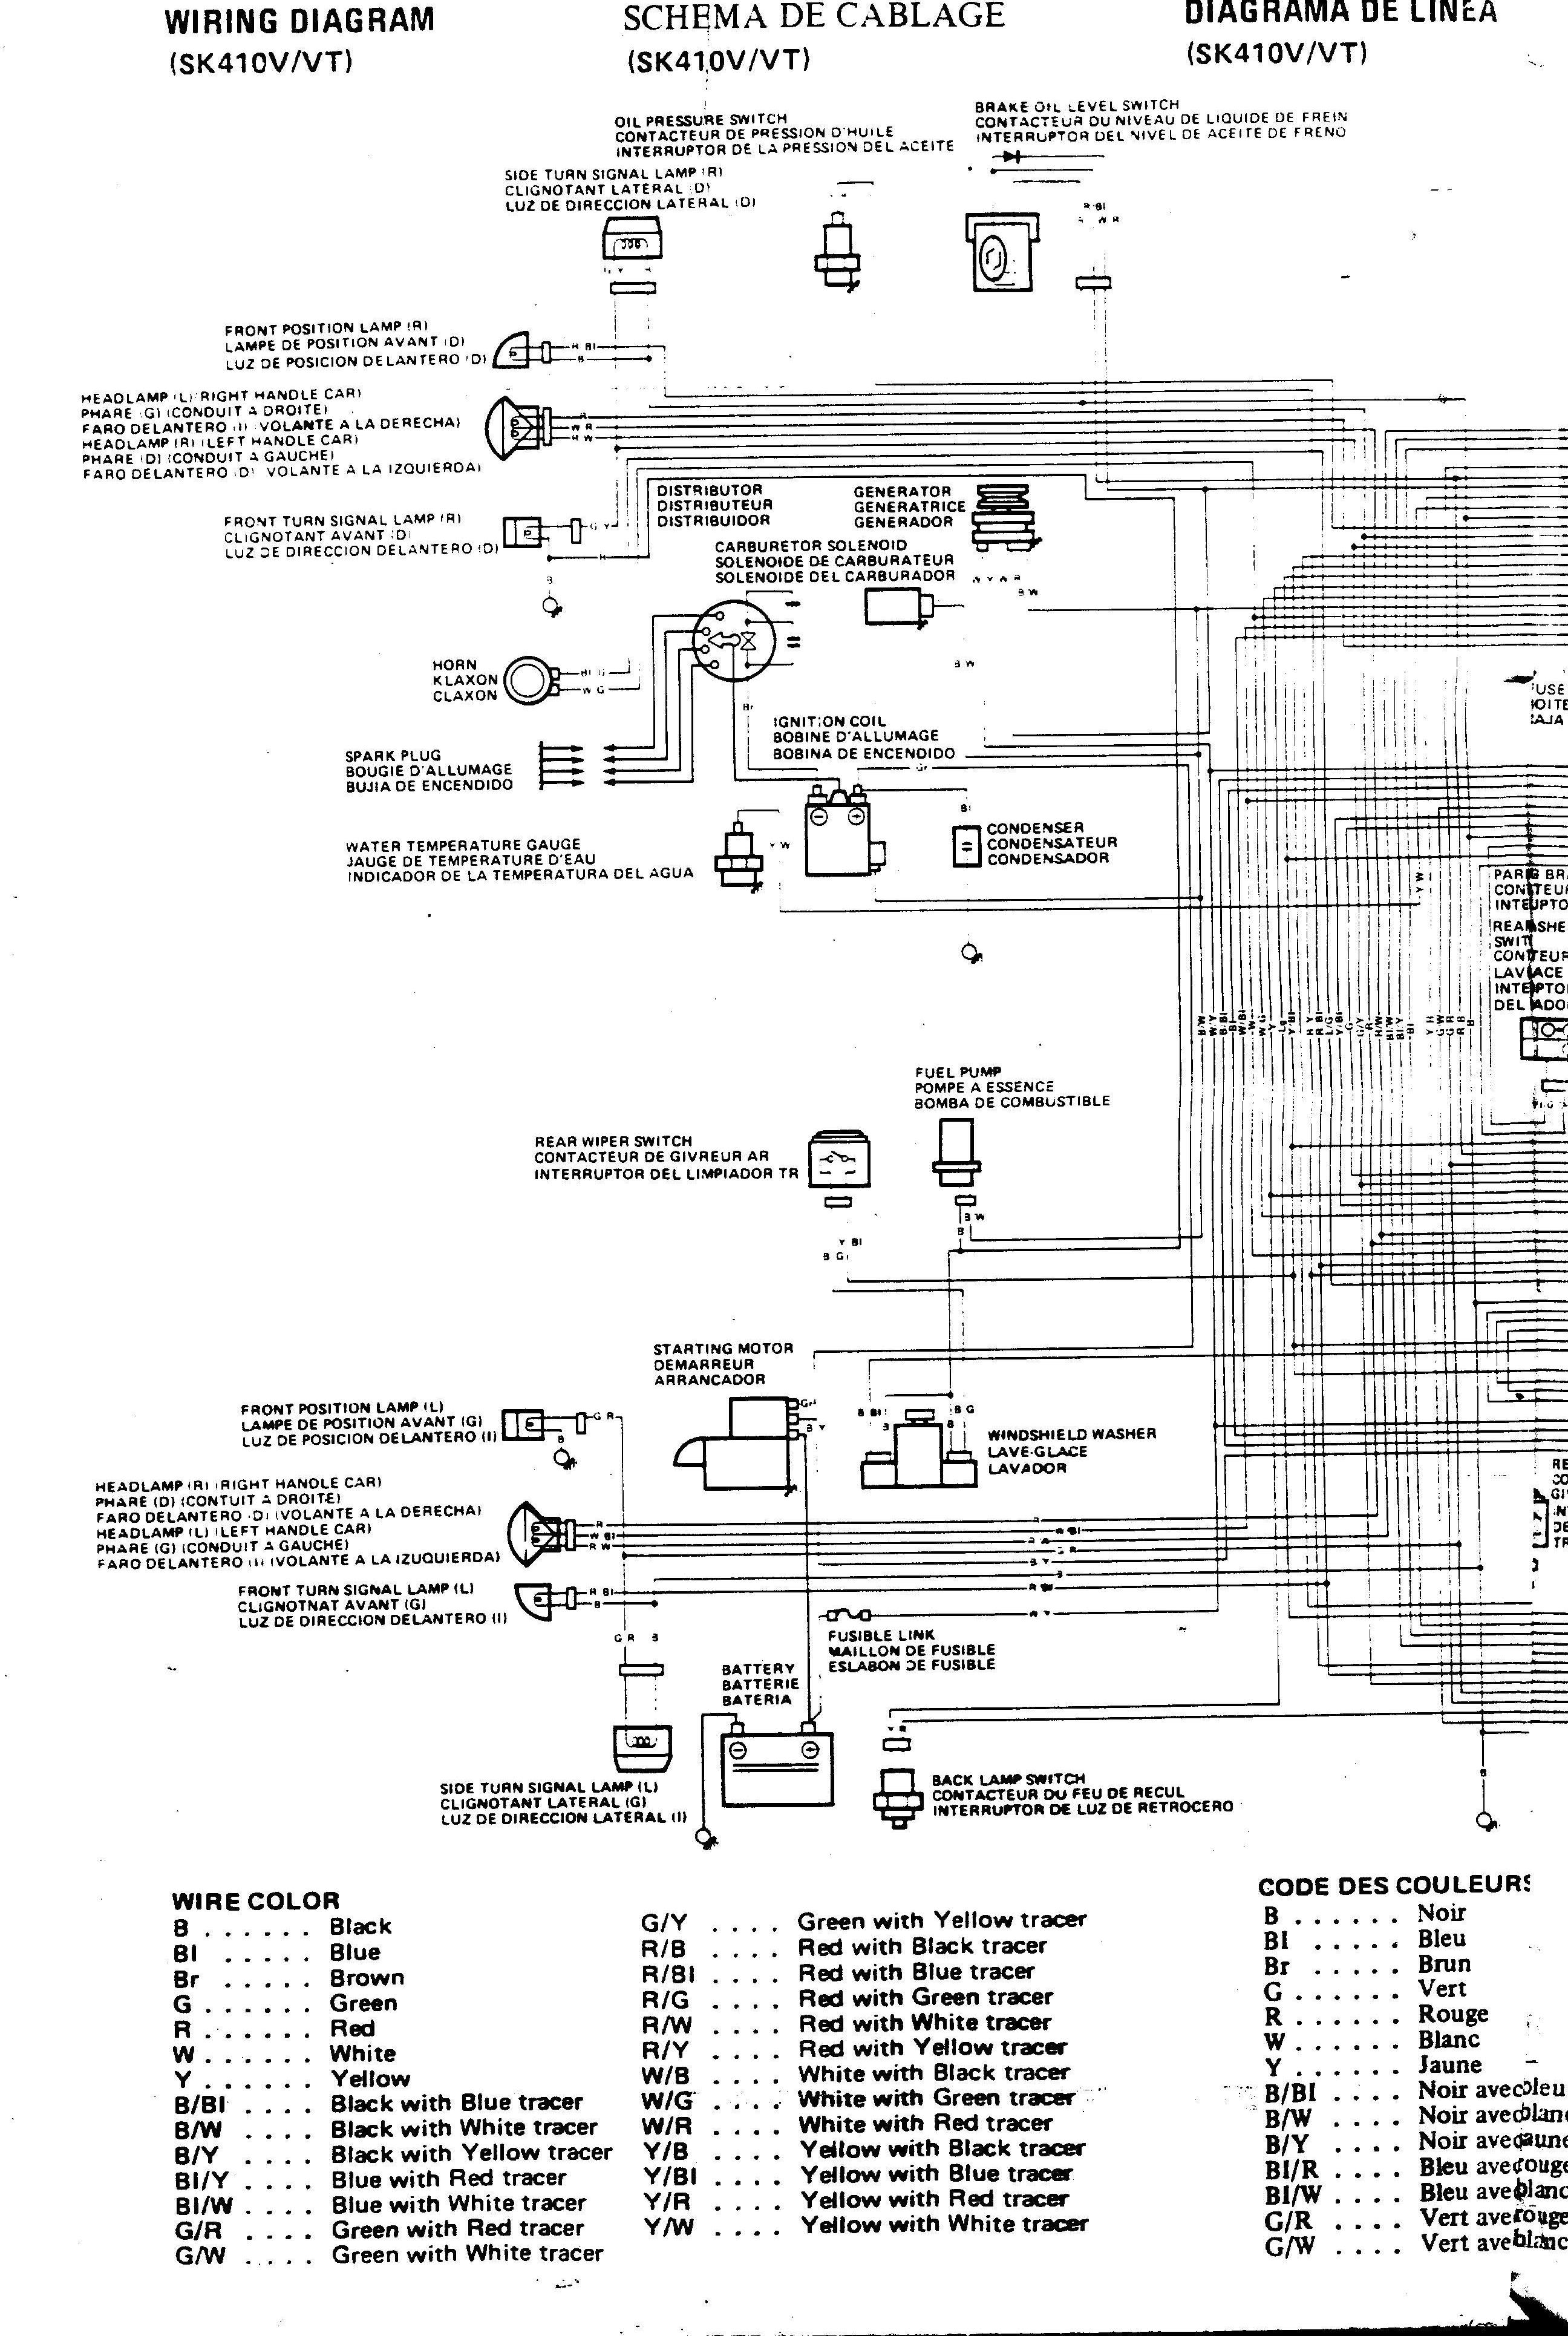 wiring diagram suzuki carry 1000 | wiring library suzuki carry fuse box diagram suzuki xl7 fuse box diagram